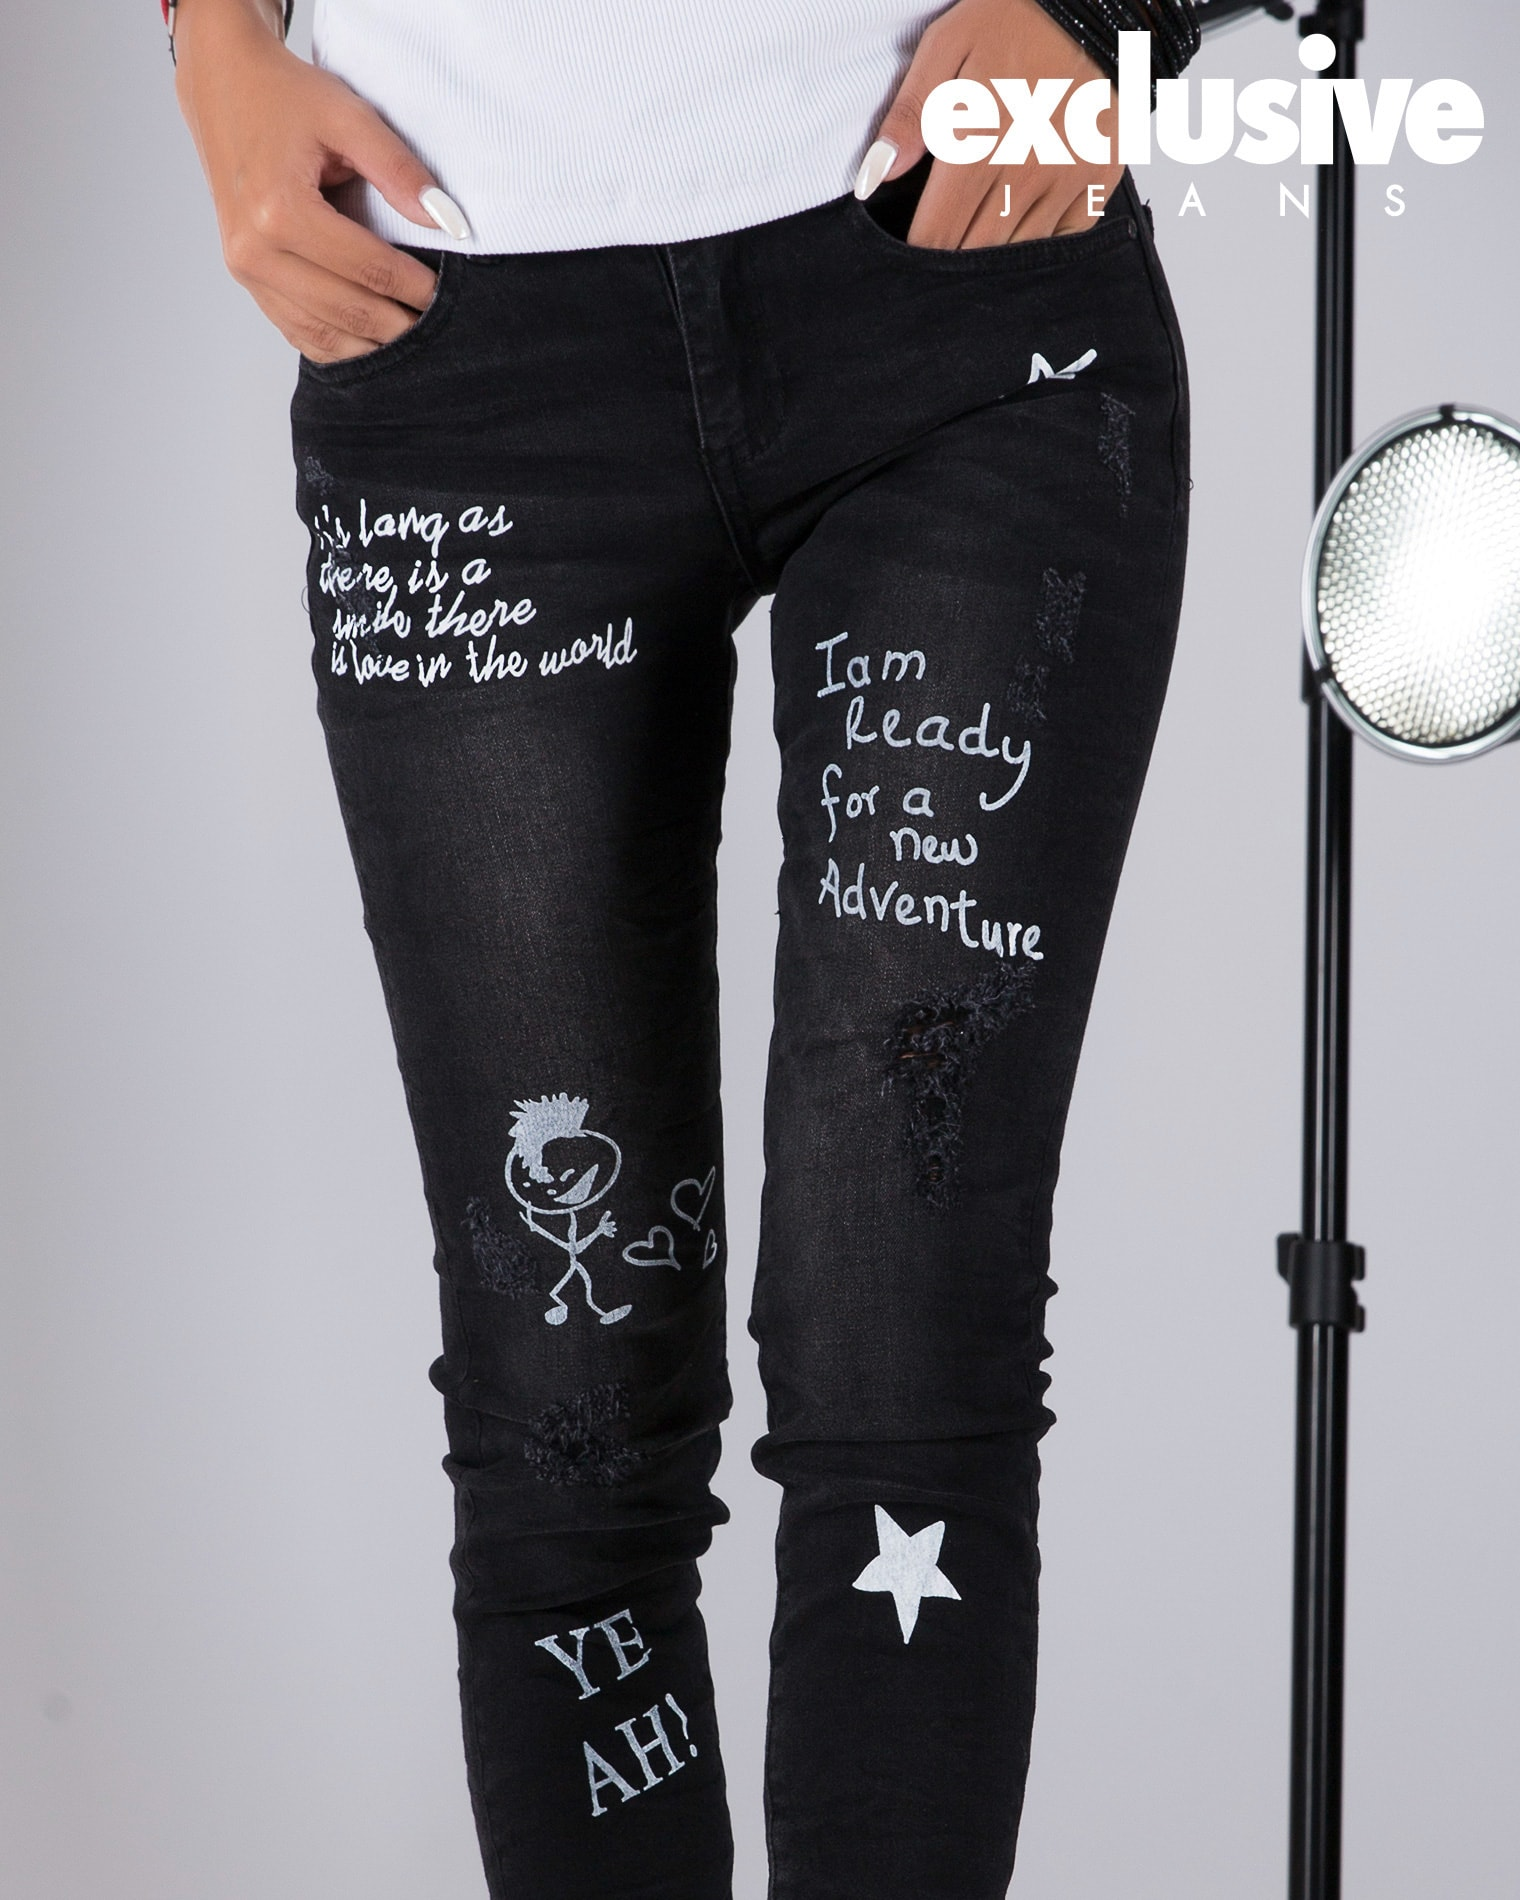 1eace1eb361 Дънки Adventure | Exclusive Jeans